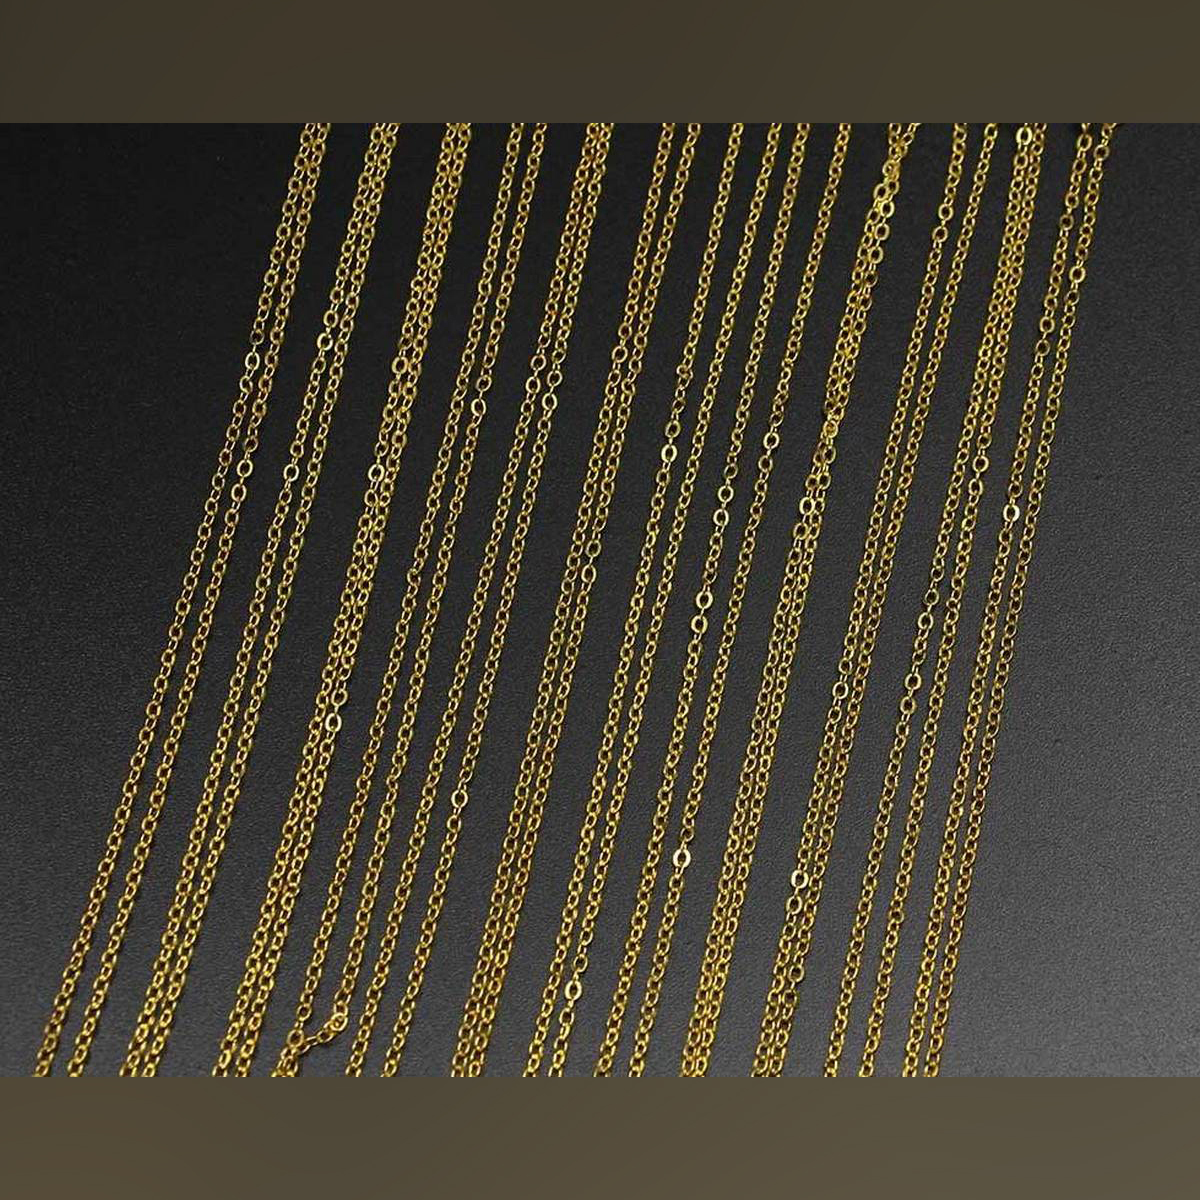 50cm Gold  Necklace Charm Chains For DIY Jewelry Findings Making Materials Accessories